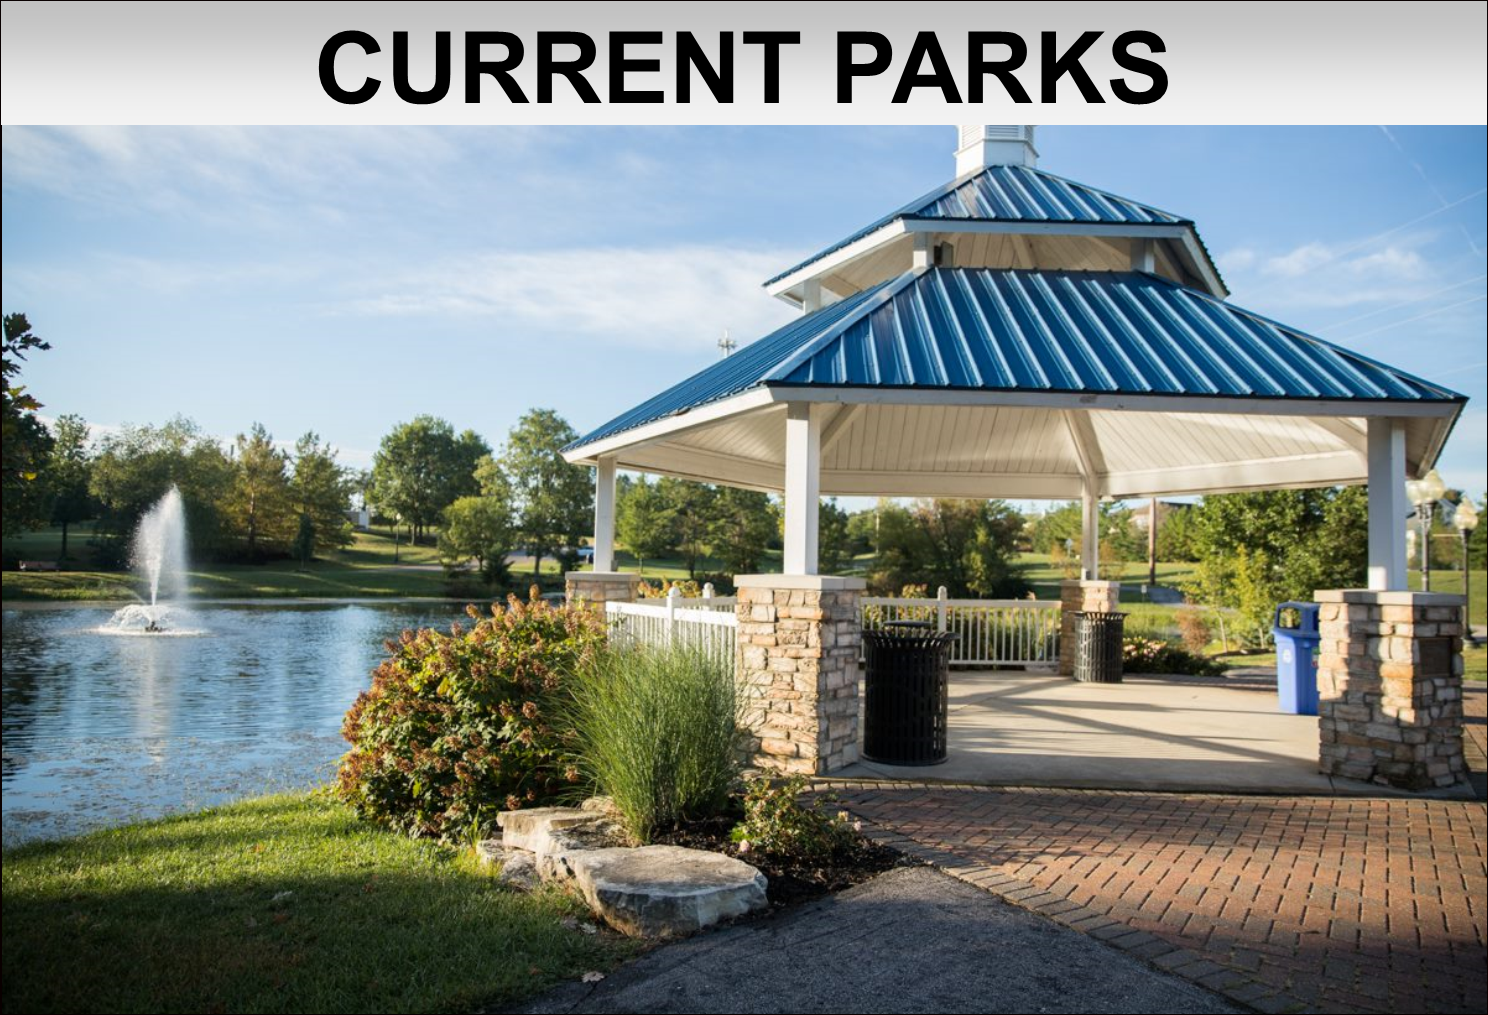 Current Parks image